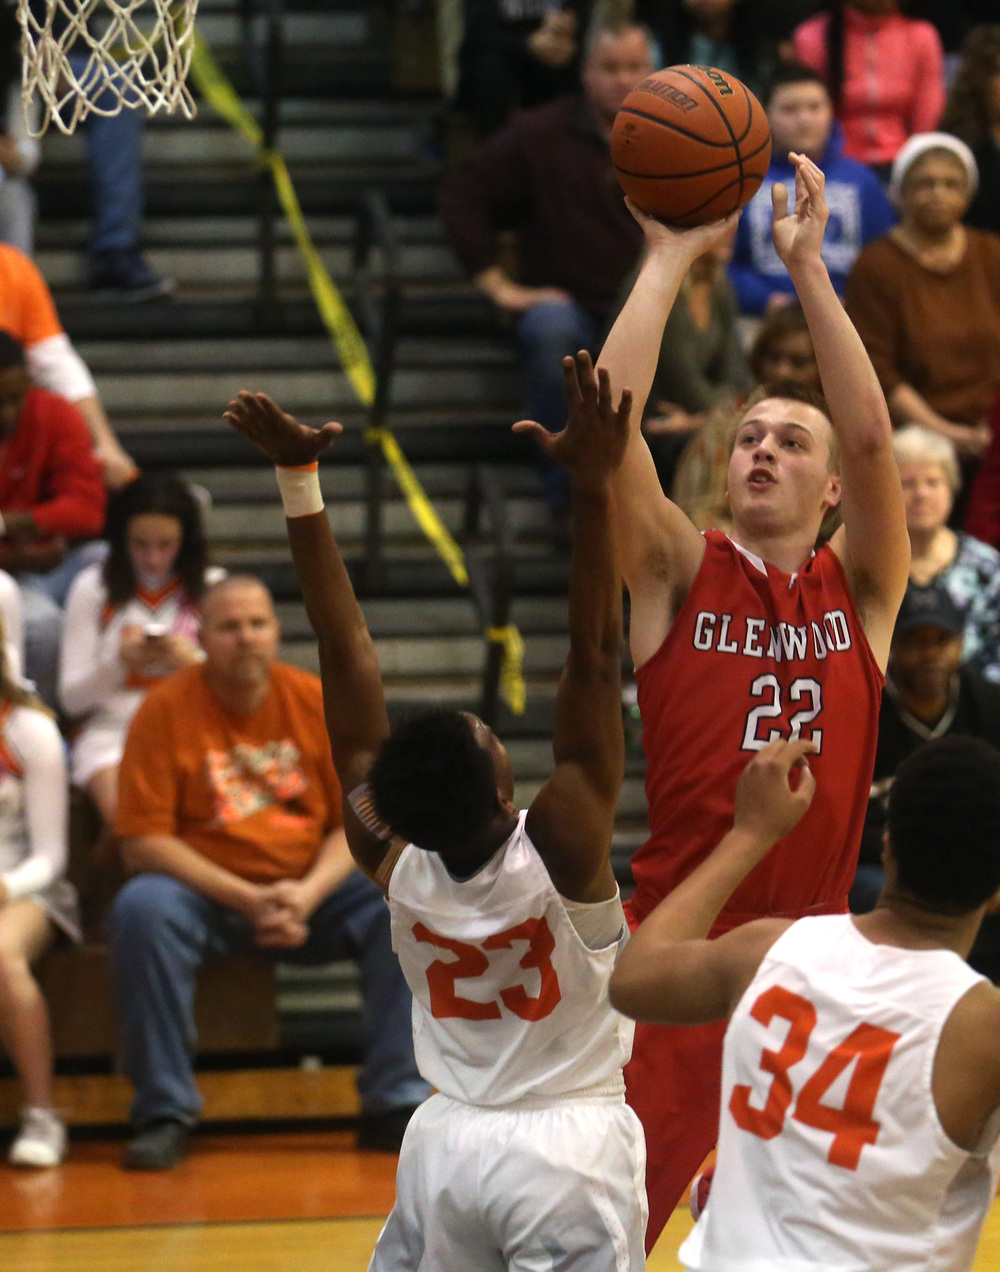 Glenwood's Parker Allen prepares to launch two points. David Spencer/The State Journal Register